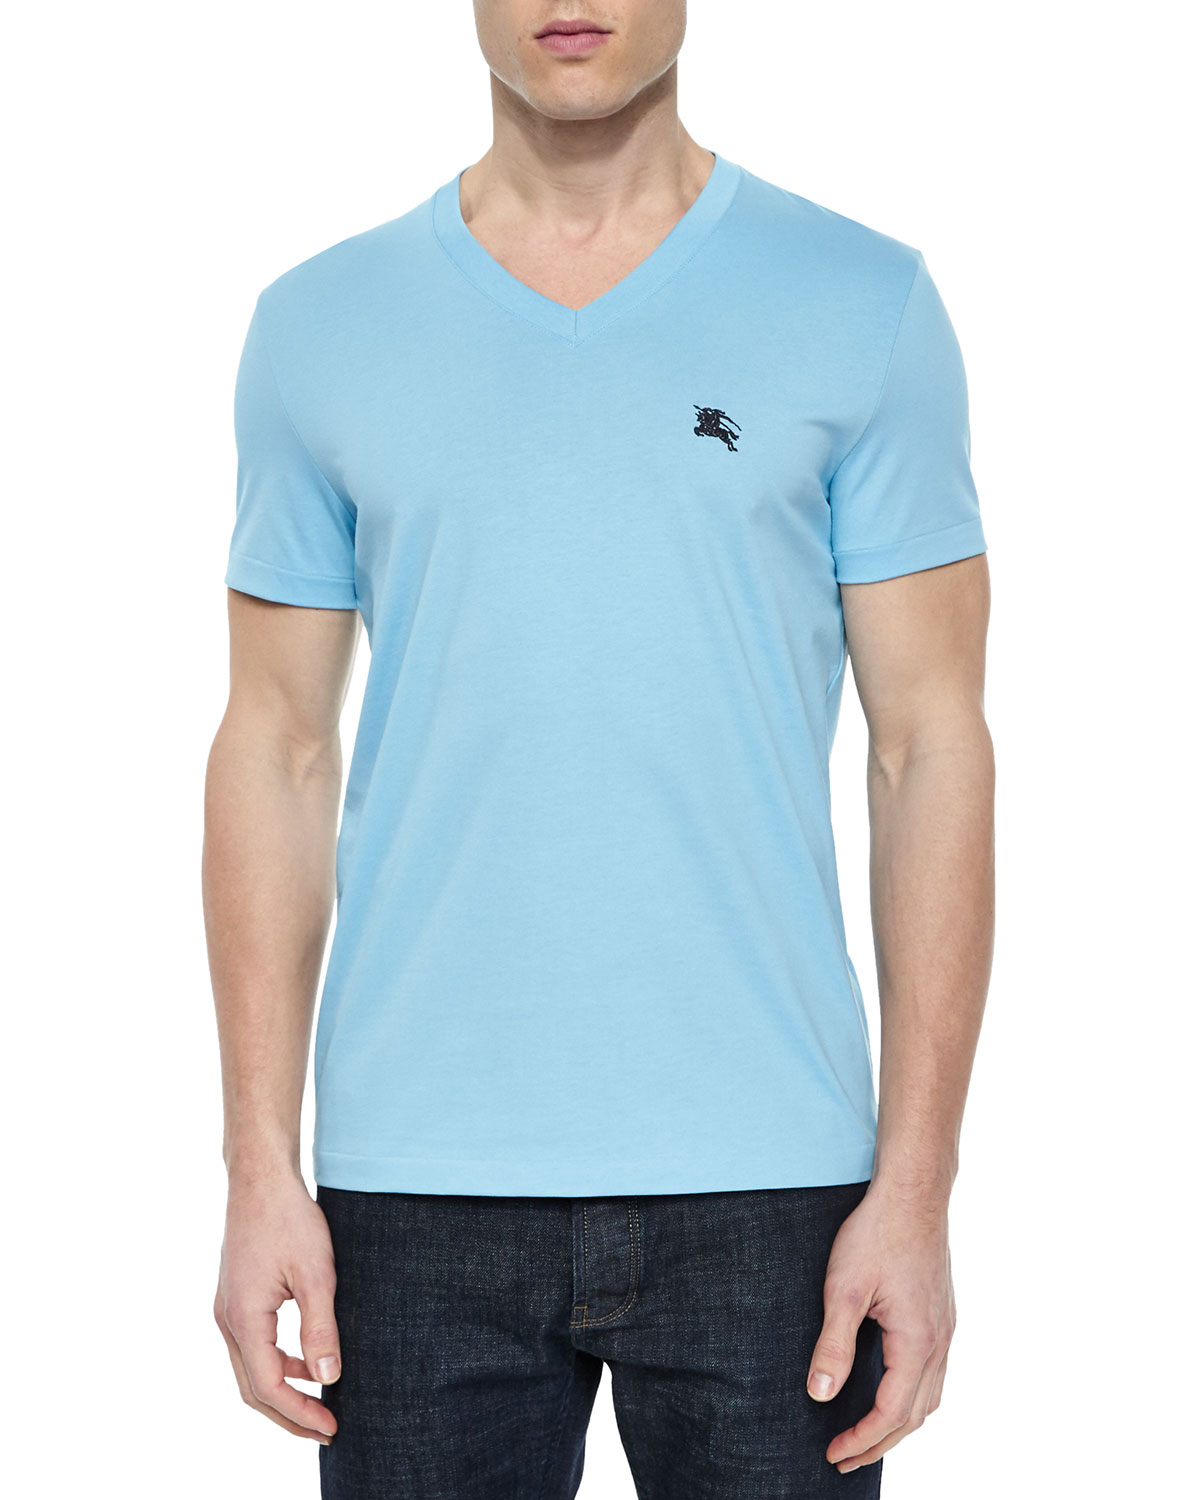 Cotton V-Neck T-Shirt, Light Blue